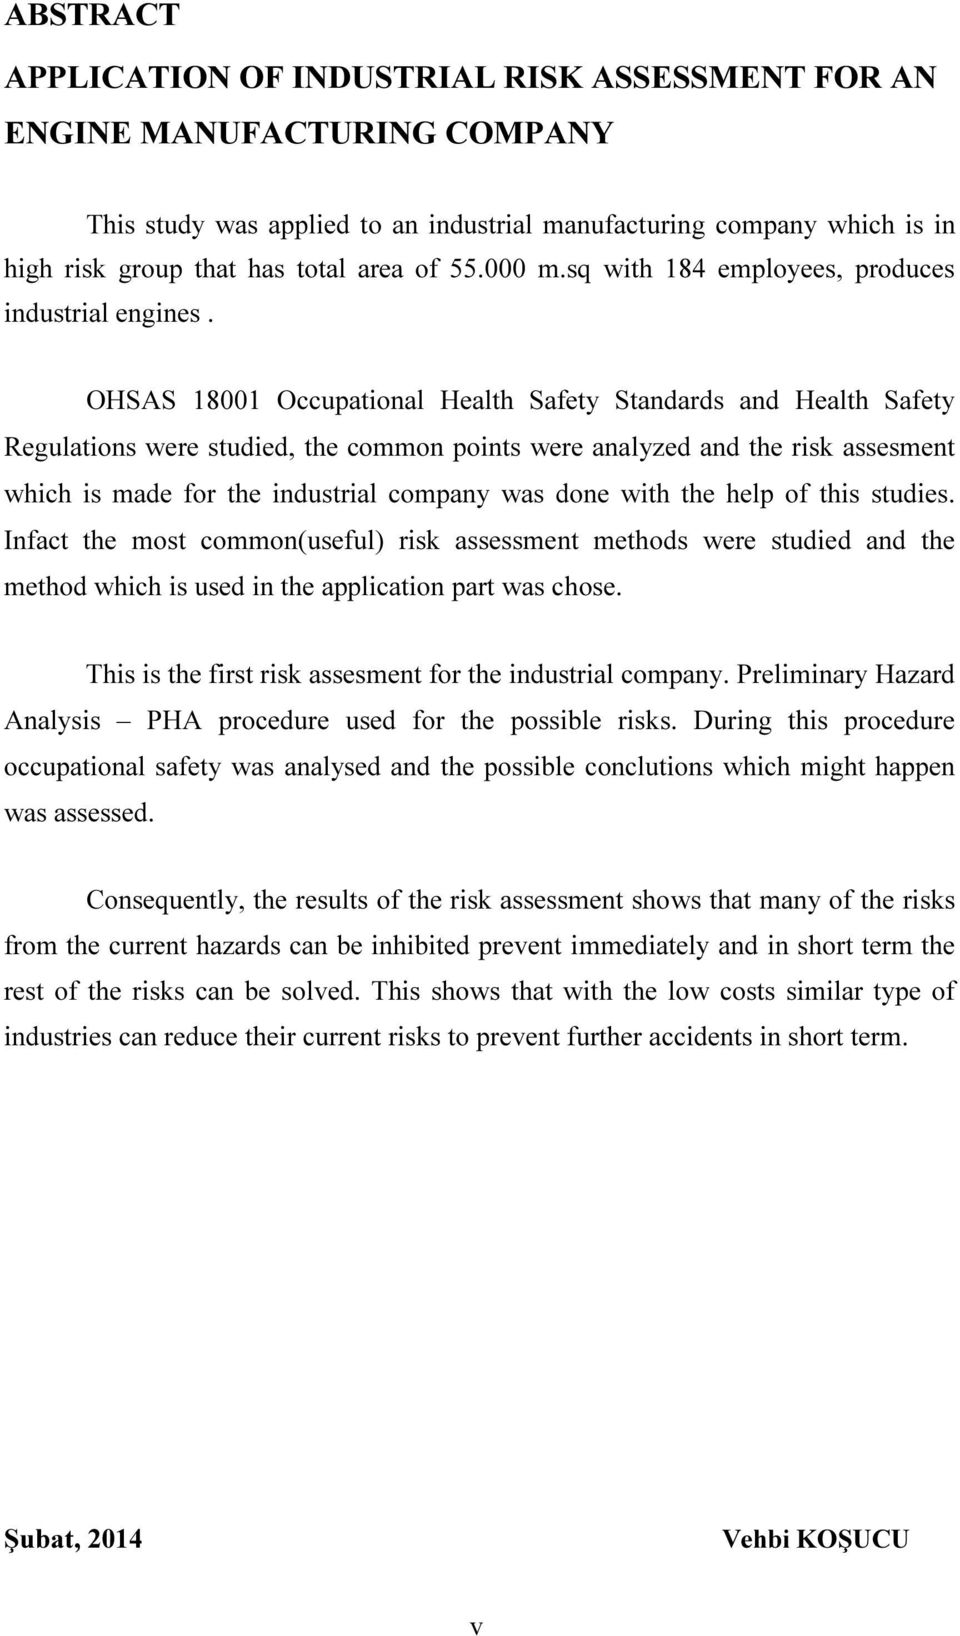 OHSAS 18001 Occupational Health Safety Standards and Health Safety Regulations were studied, the common points were analyzed and the risk assesment which is made for the industrial company was done